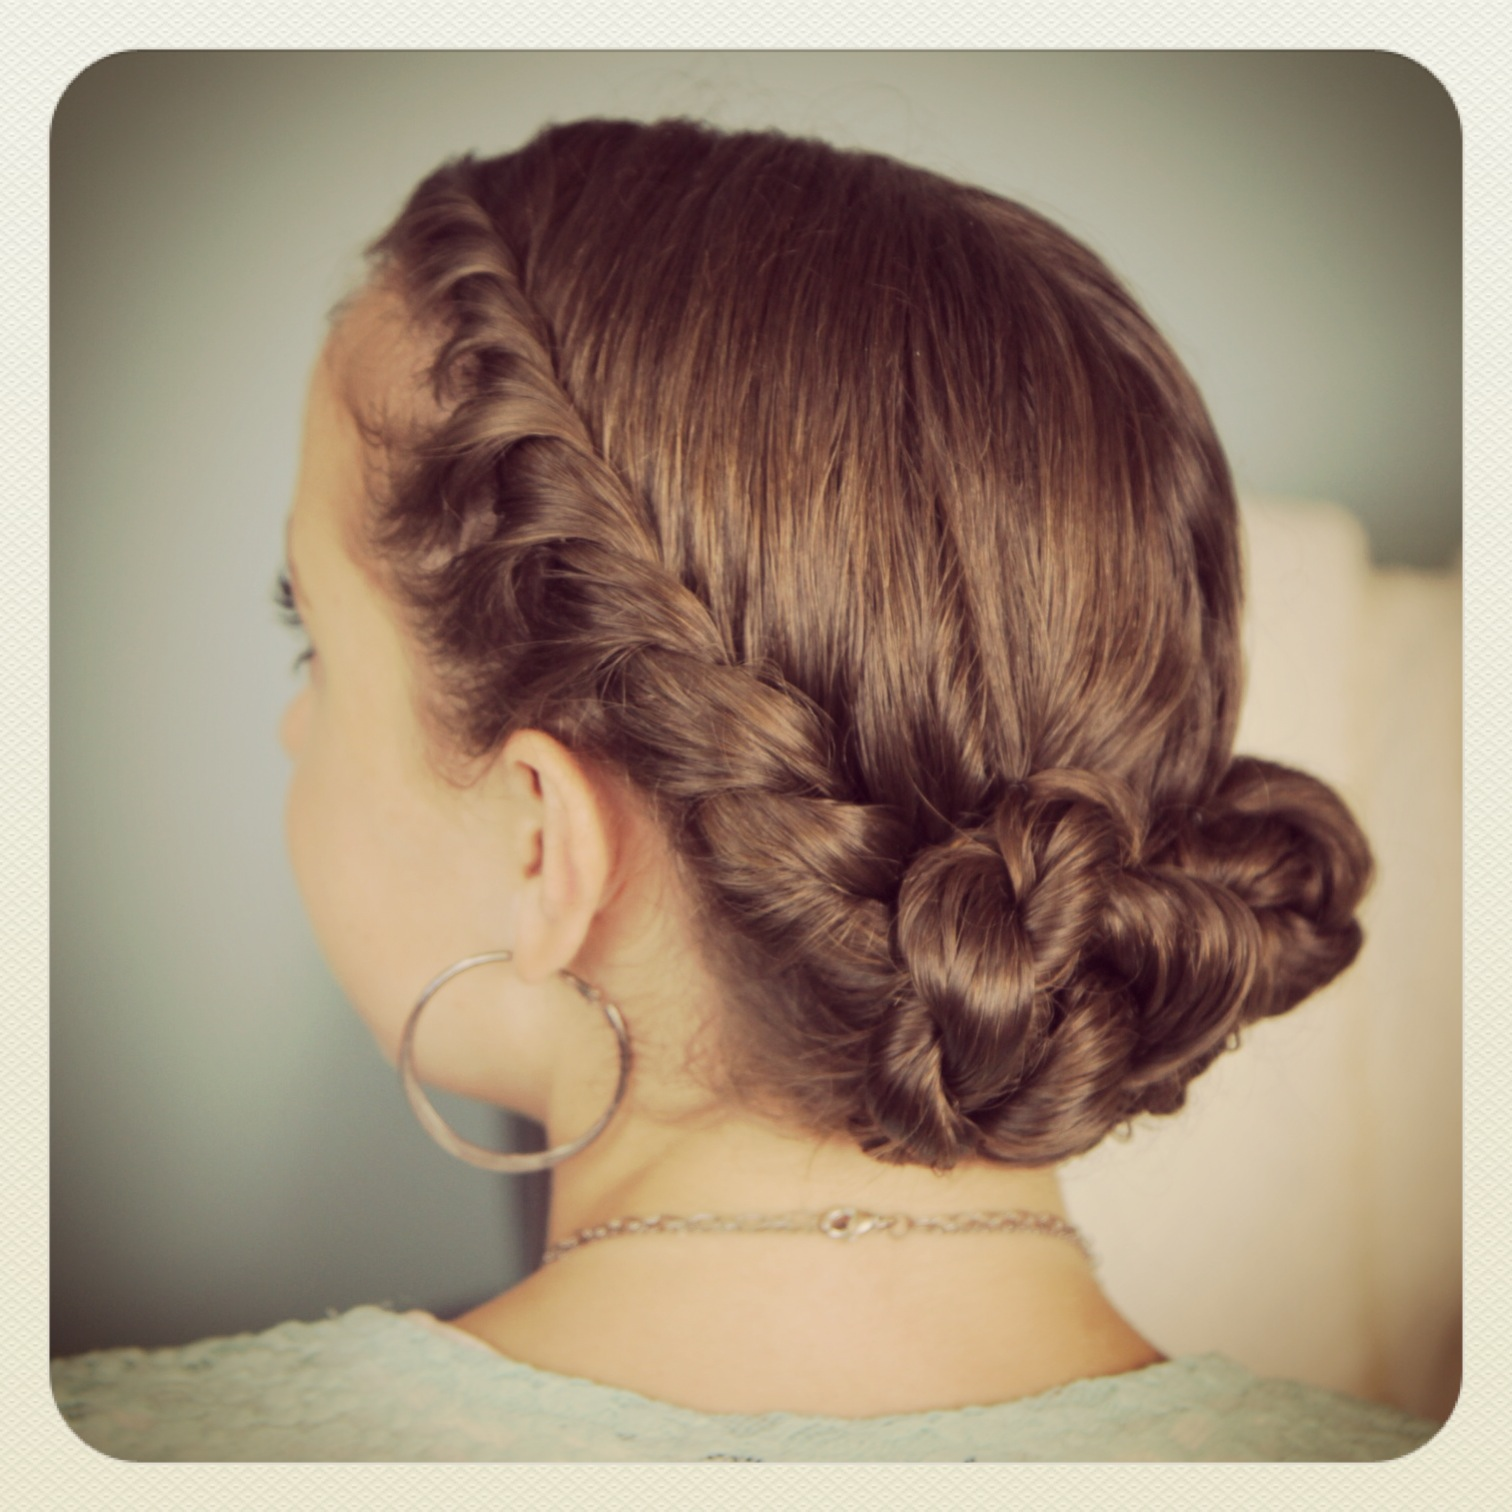 Cute Girl Hairstyles Bun Twist